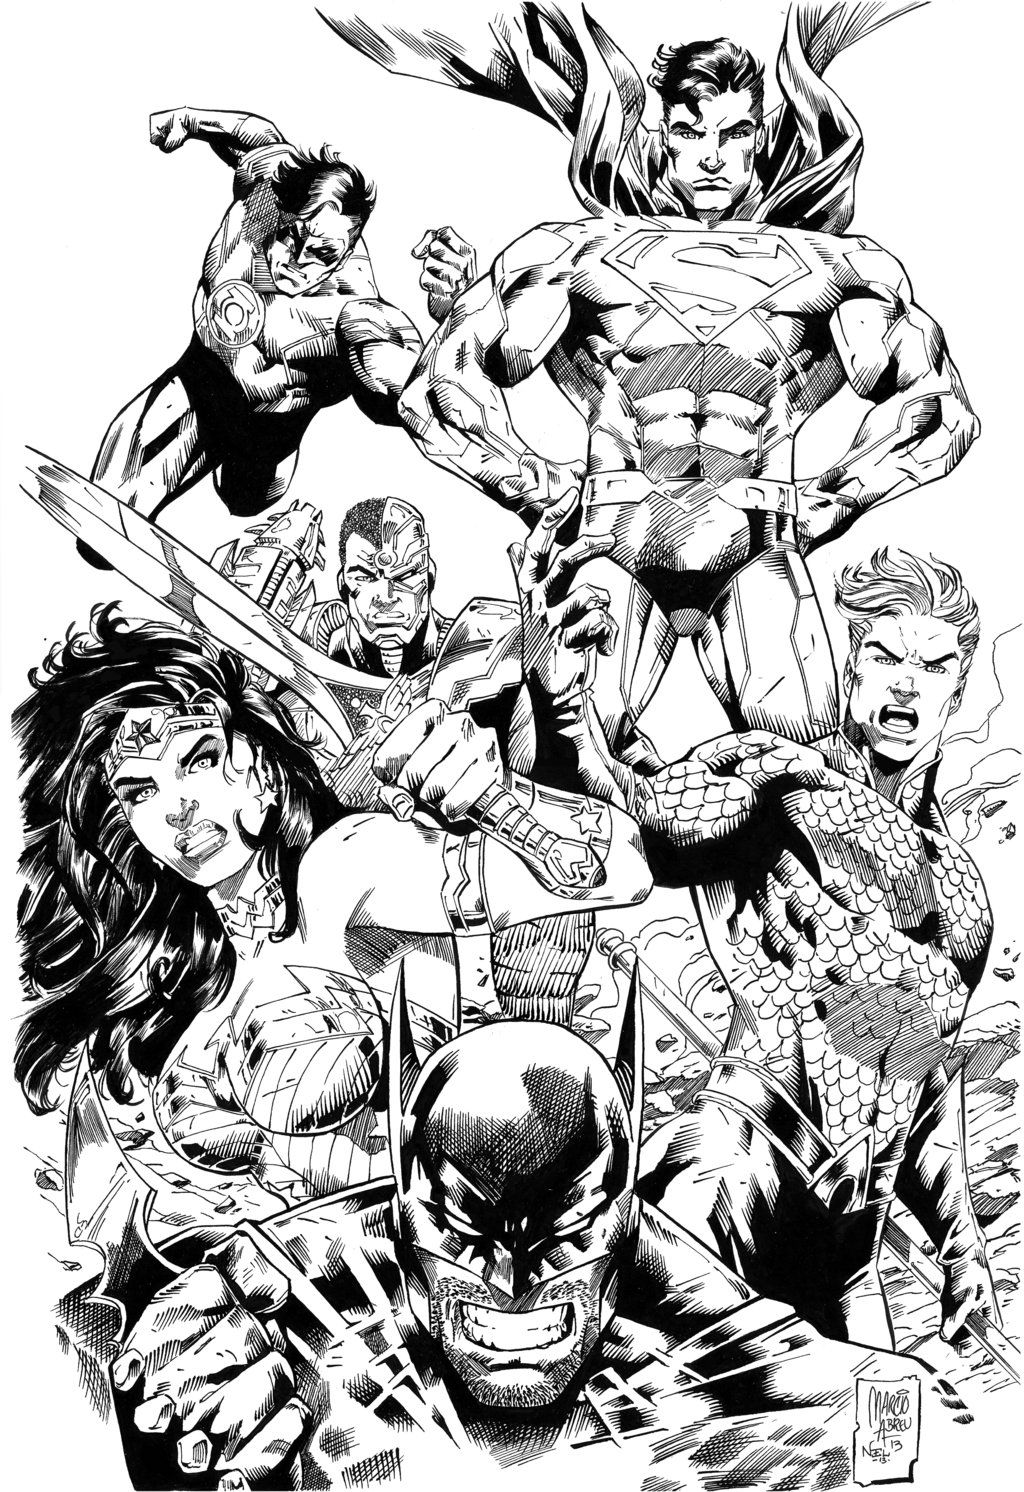 Justice League comic colouring page | Comic | Pinterest